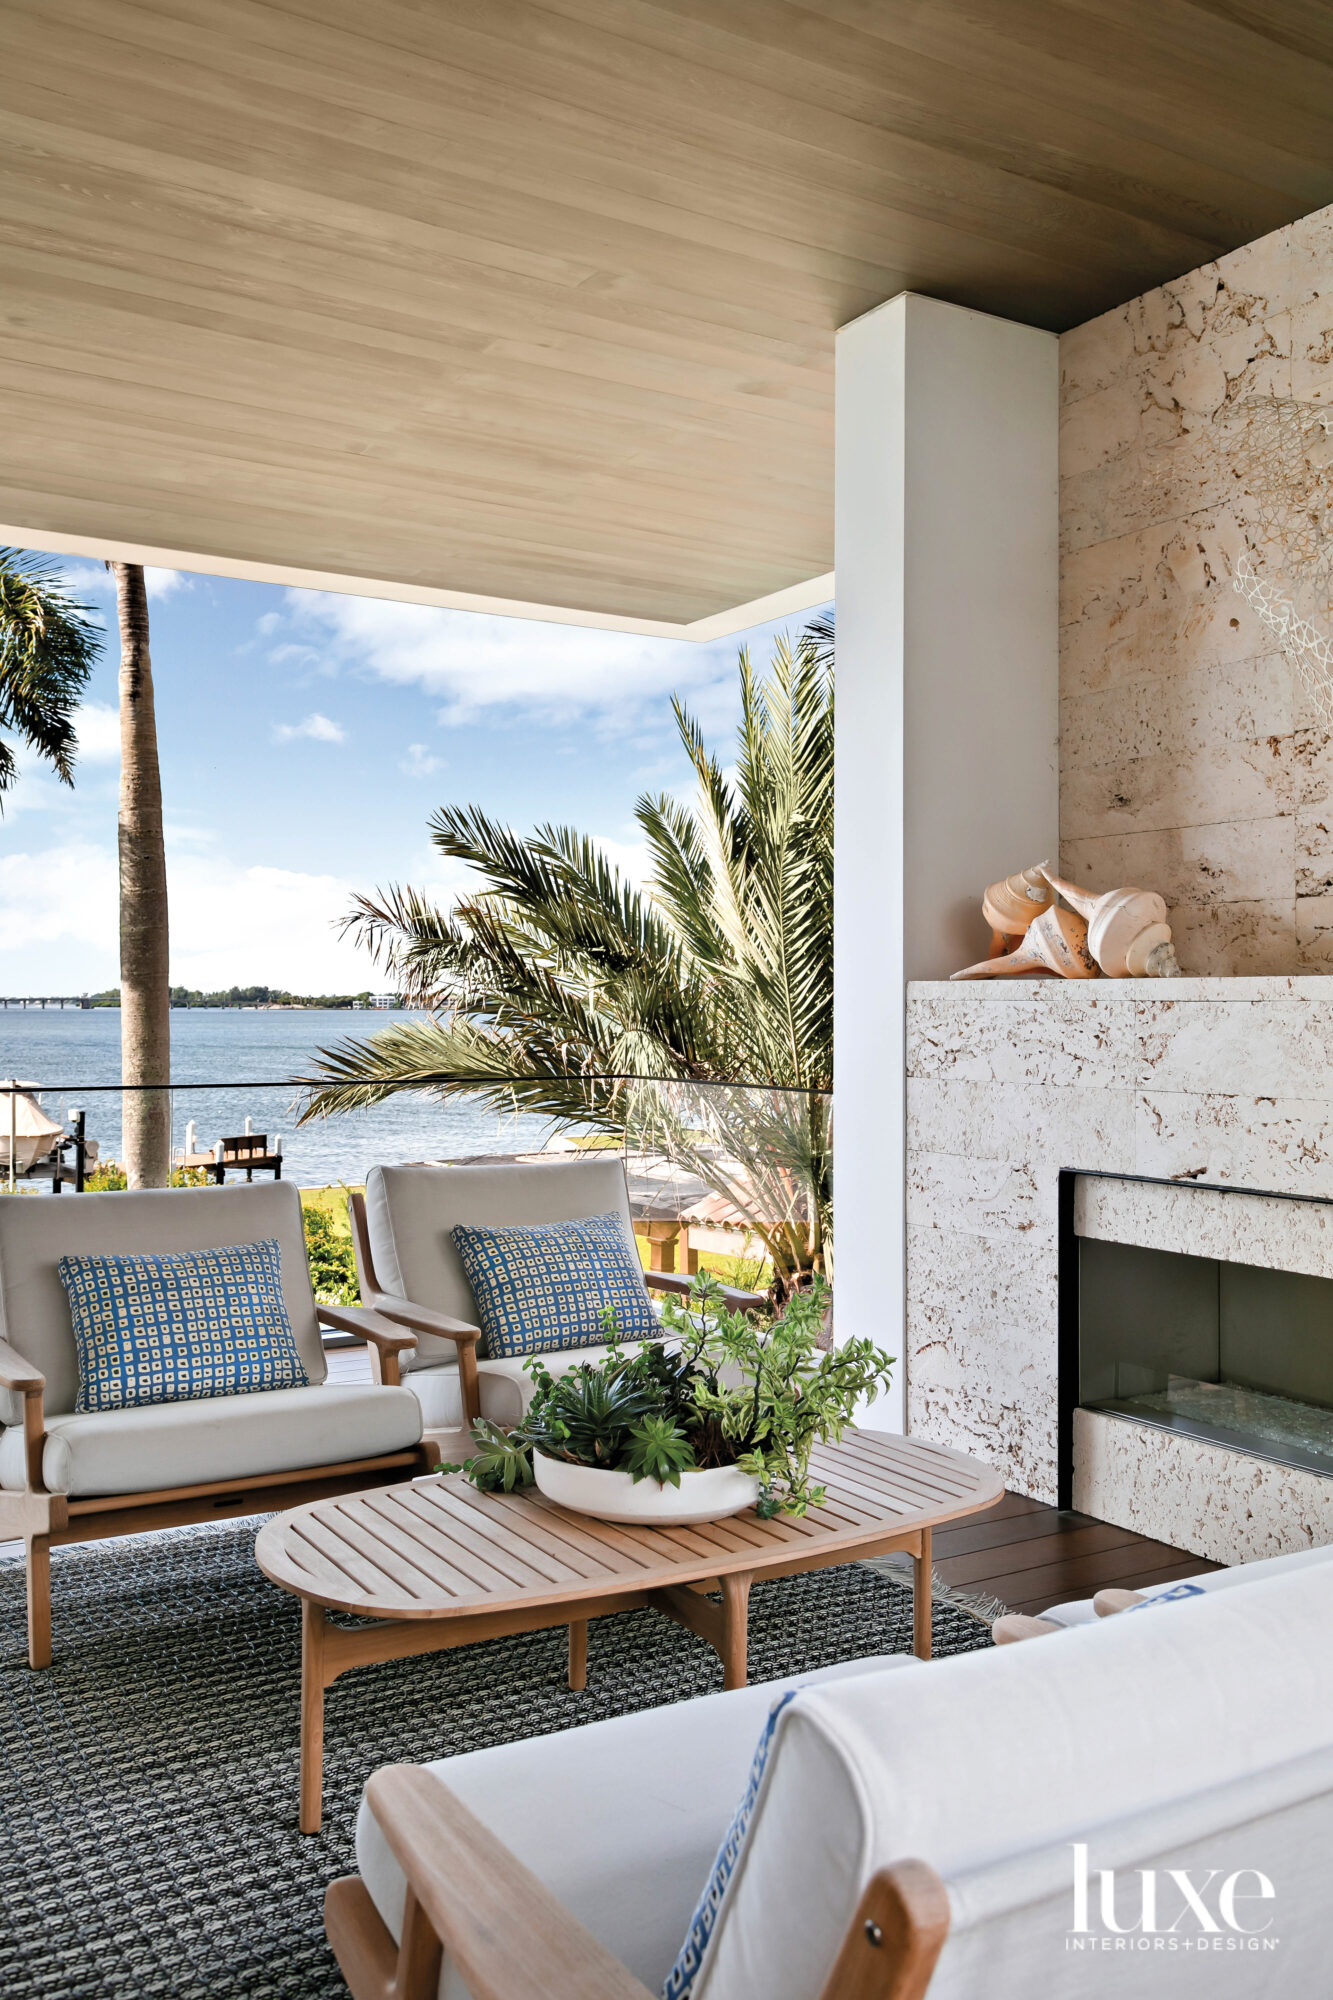 Outdoor seating area with coral...